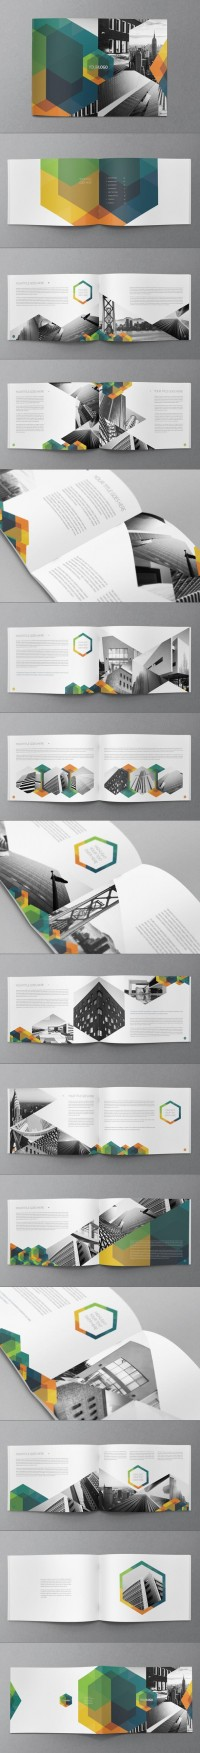 Hexo Brochure Design on